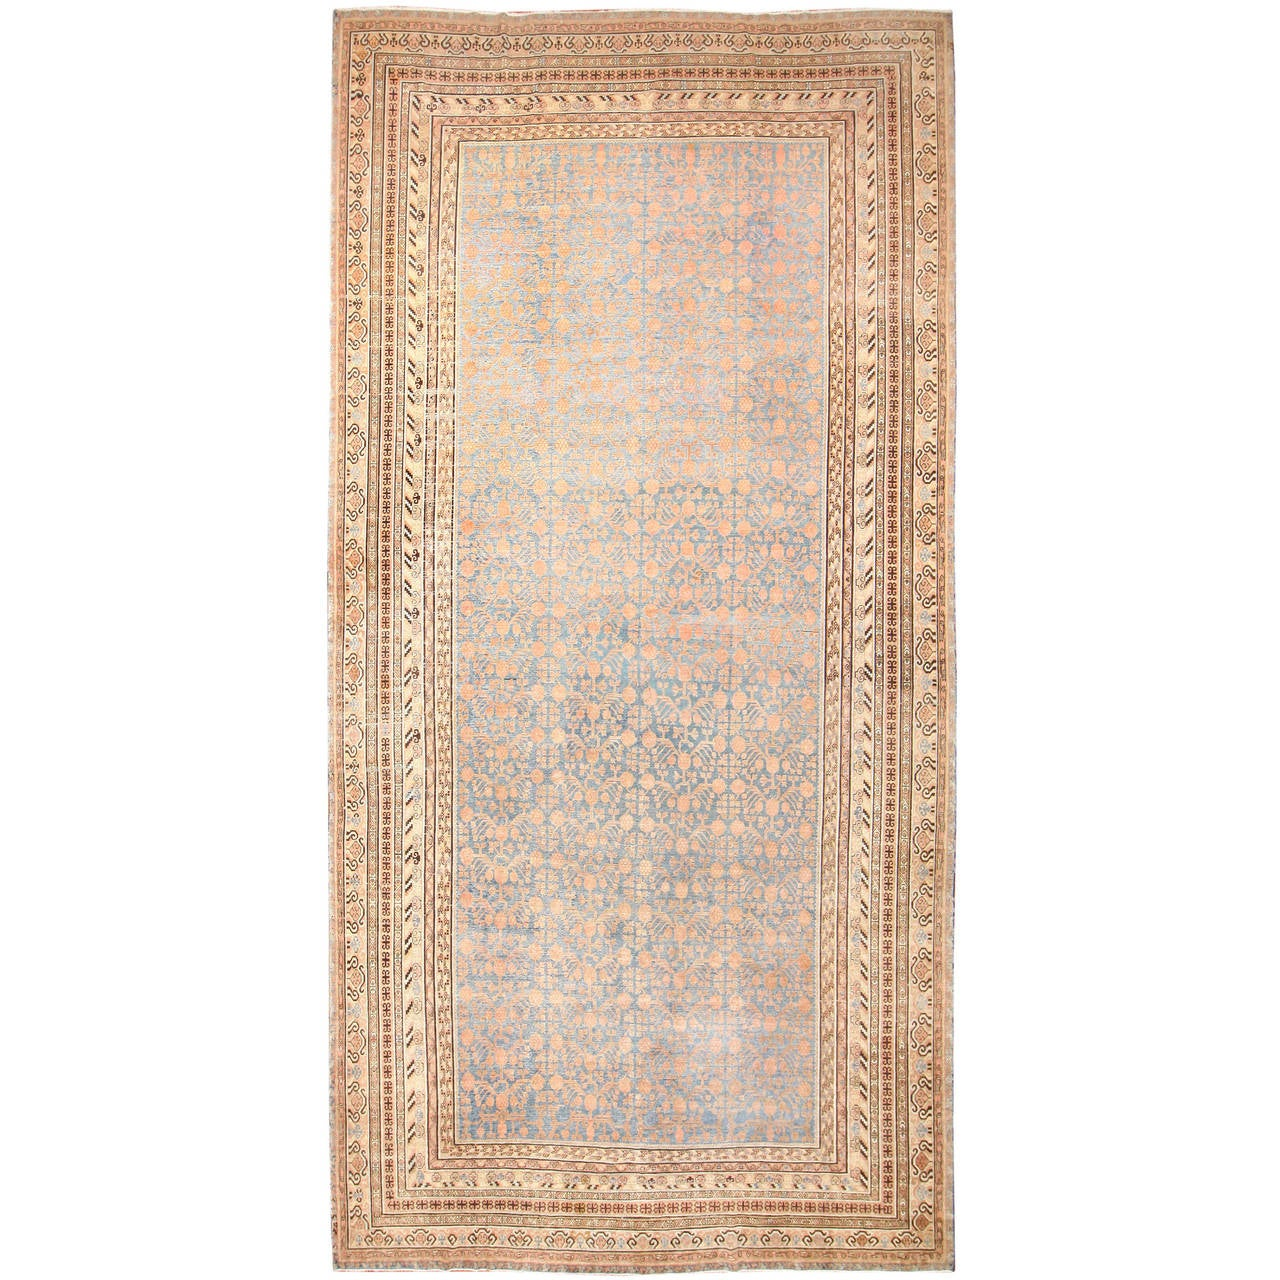 Antique Large Rug: Large Antique Khotan Rug For Sale At 1stdibs